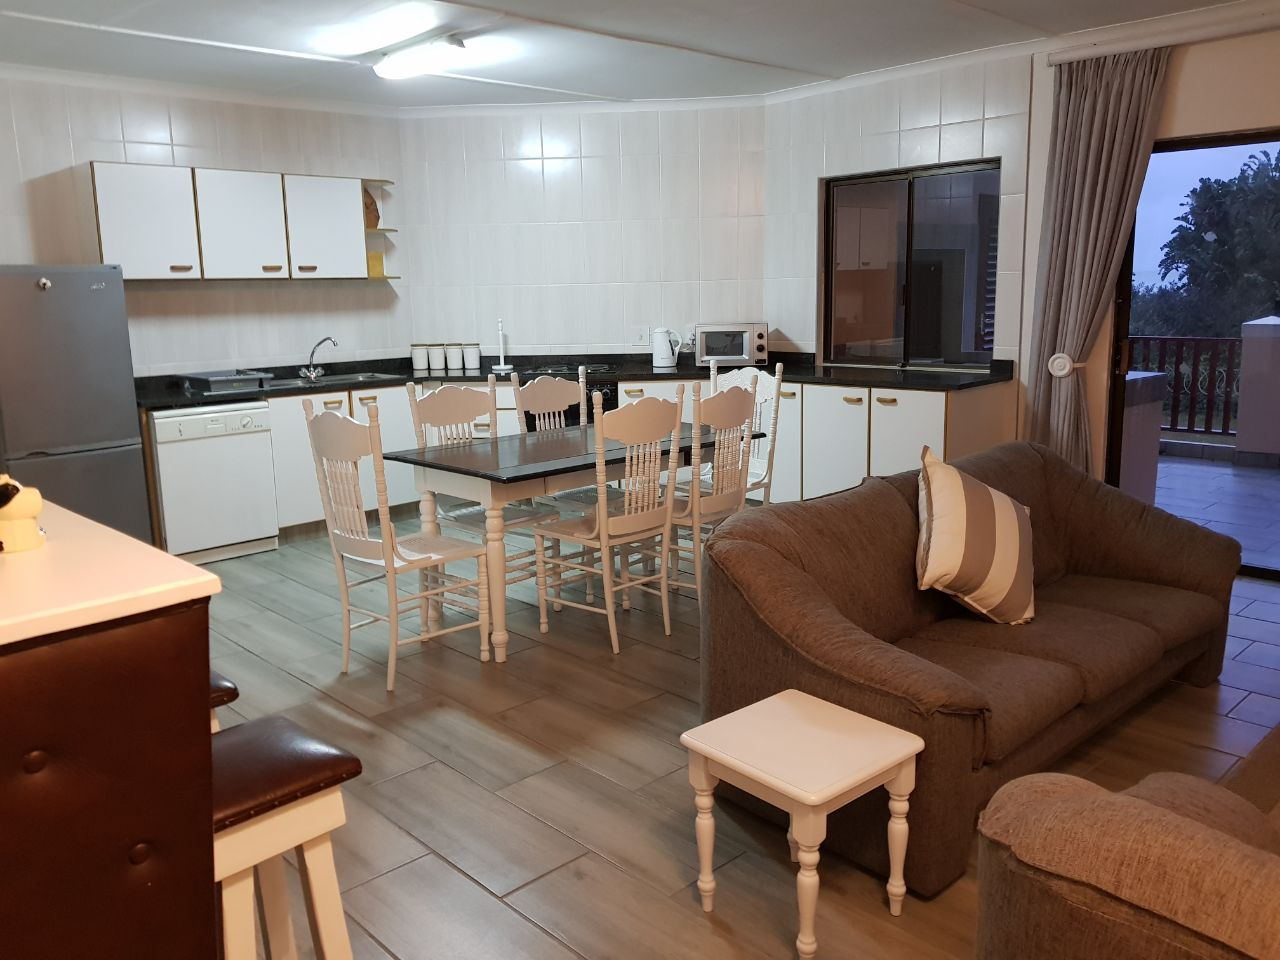 Beachfront flat for holiday letting in popular Shelly Beach